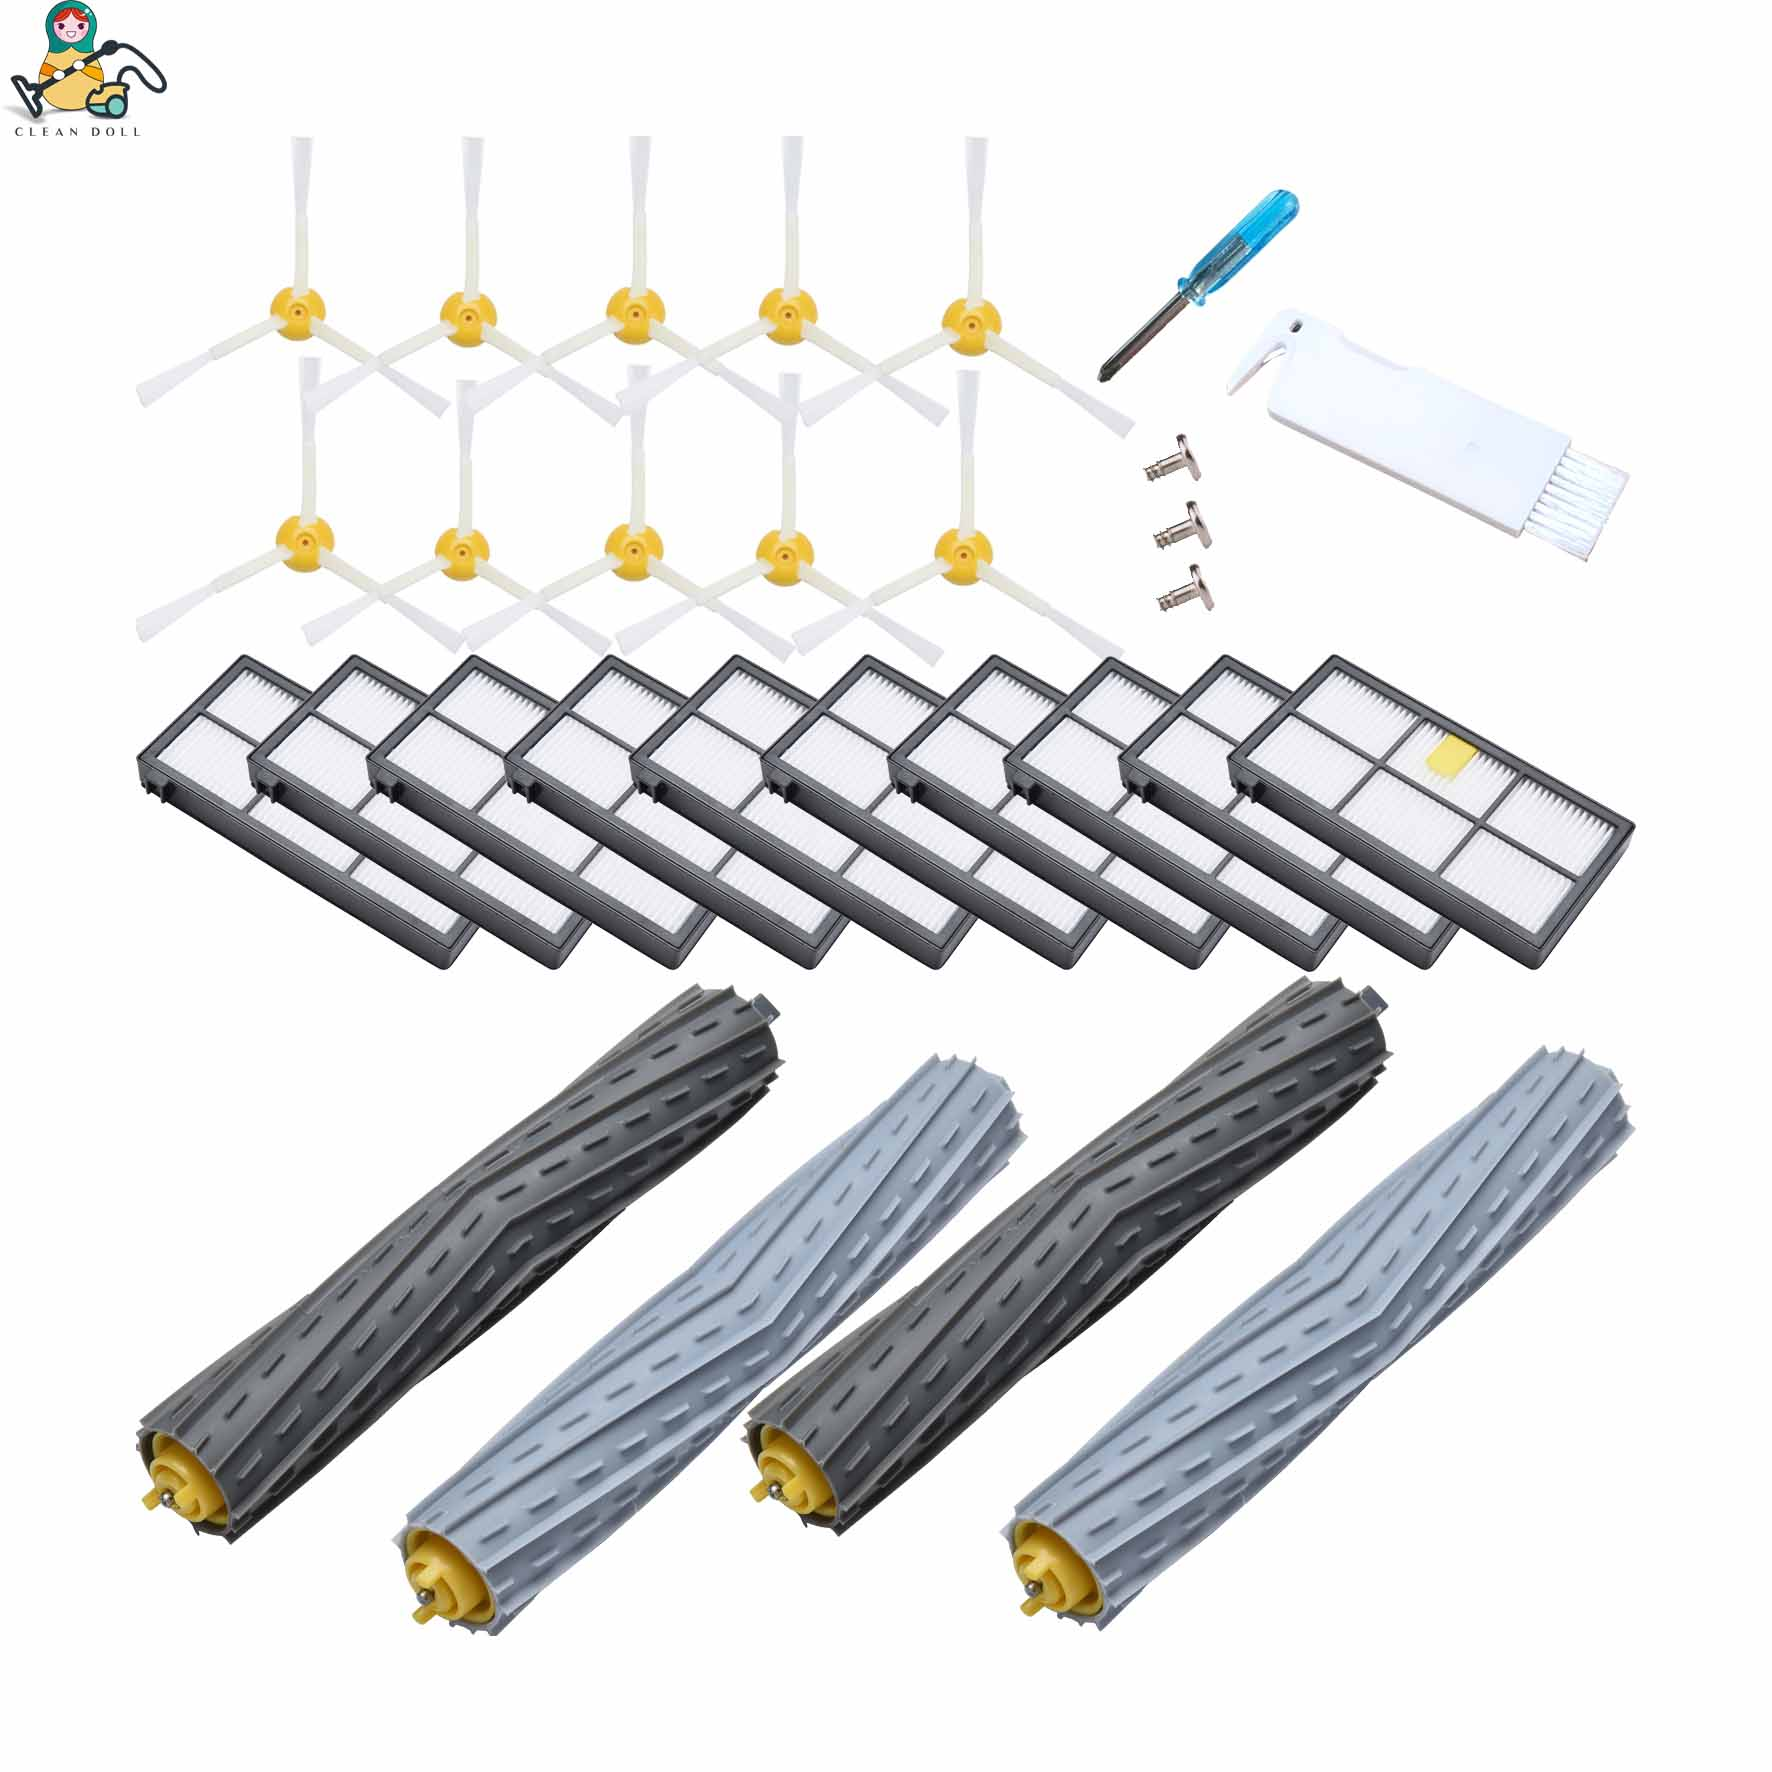 CLEAN DOLL 24-Pack side brushes Roller brush HEPA filter for iRobot Roomba 980 960 800 860 880 for i robot roomba accessories diffuseur arrière carbone bmw x4 f26